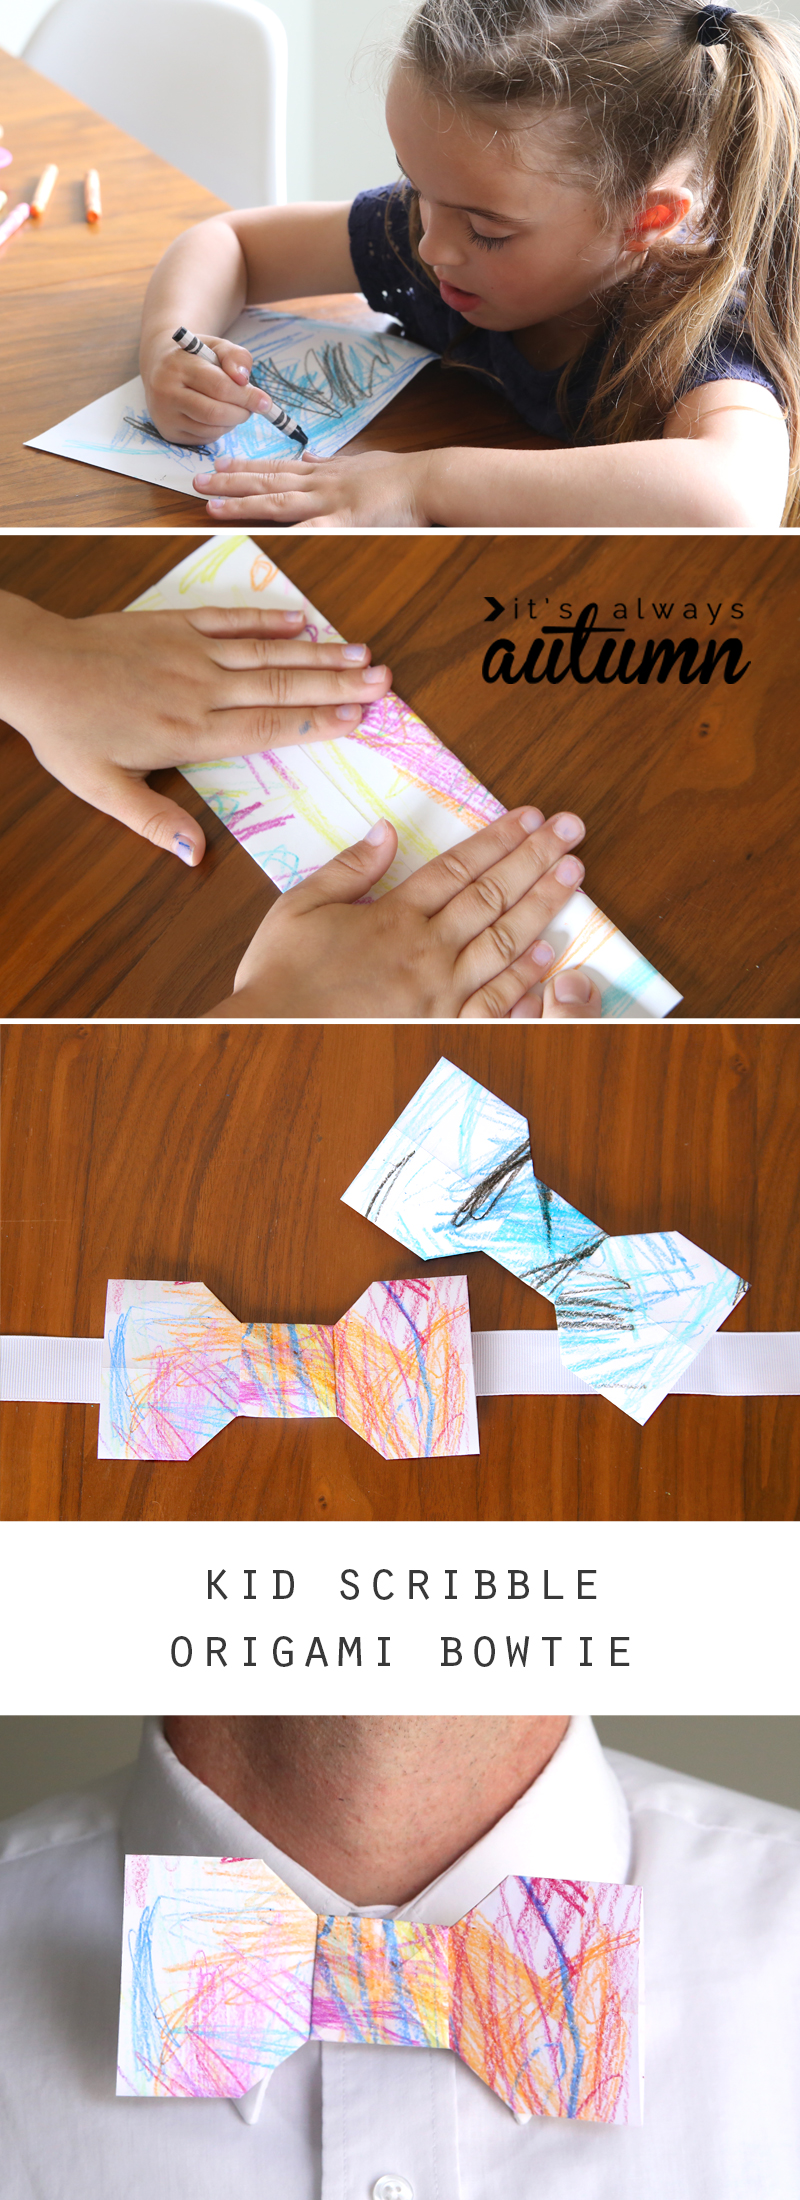 kid scribble origami bowtie easy fathers day gift kids